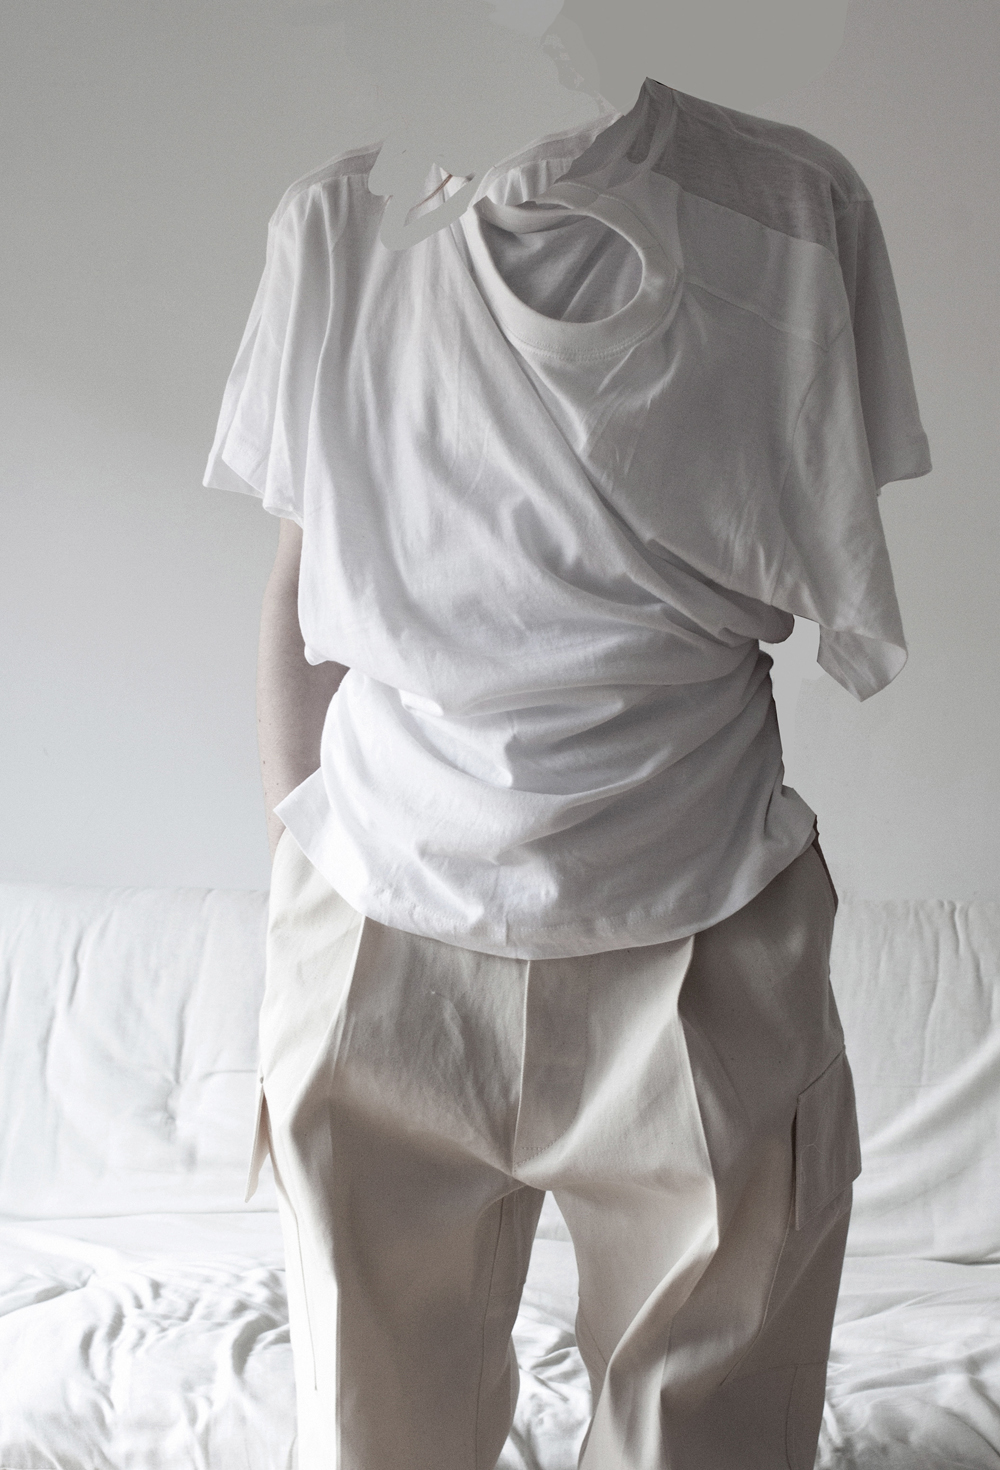 06) Inter-dependent T/ White   Each T shirt in the combined garment can be worn as lead garment (by choosing different head and arm holes) as the other T adapts to drape around it.